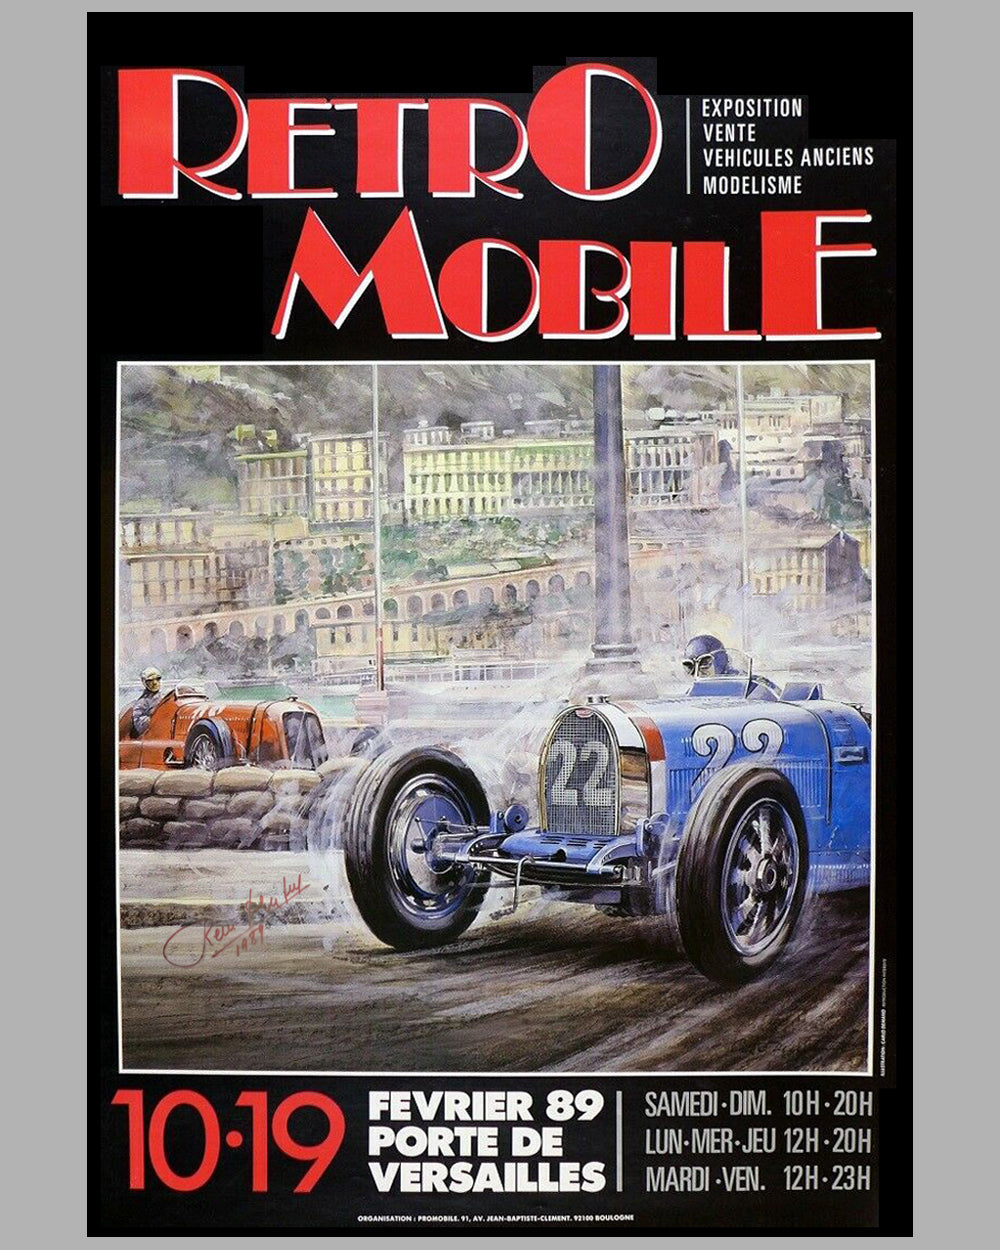 1989 Retromobile event poster autographed by Rene Dreyfus